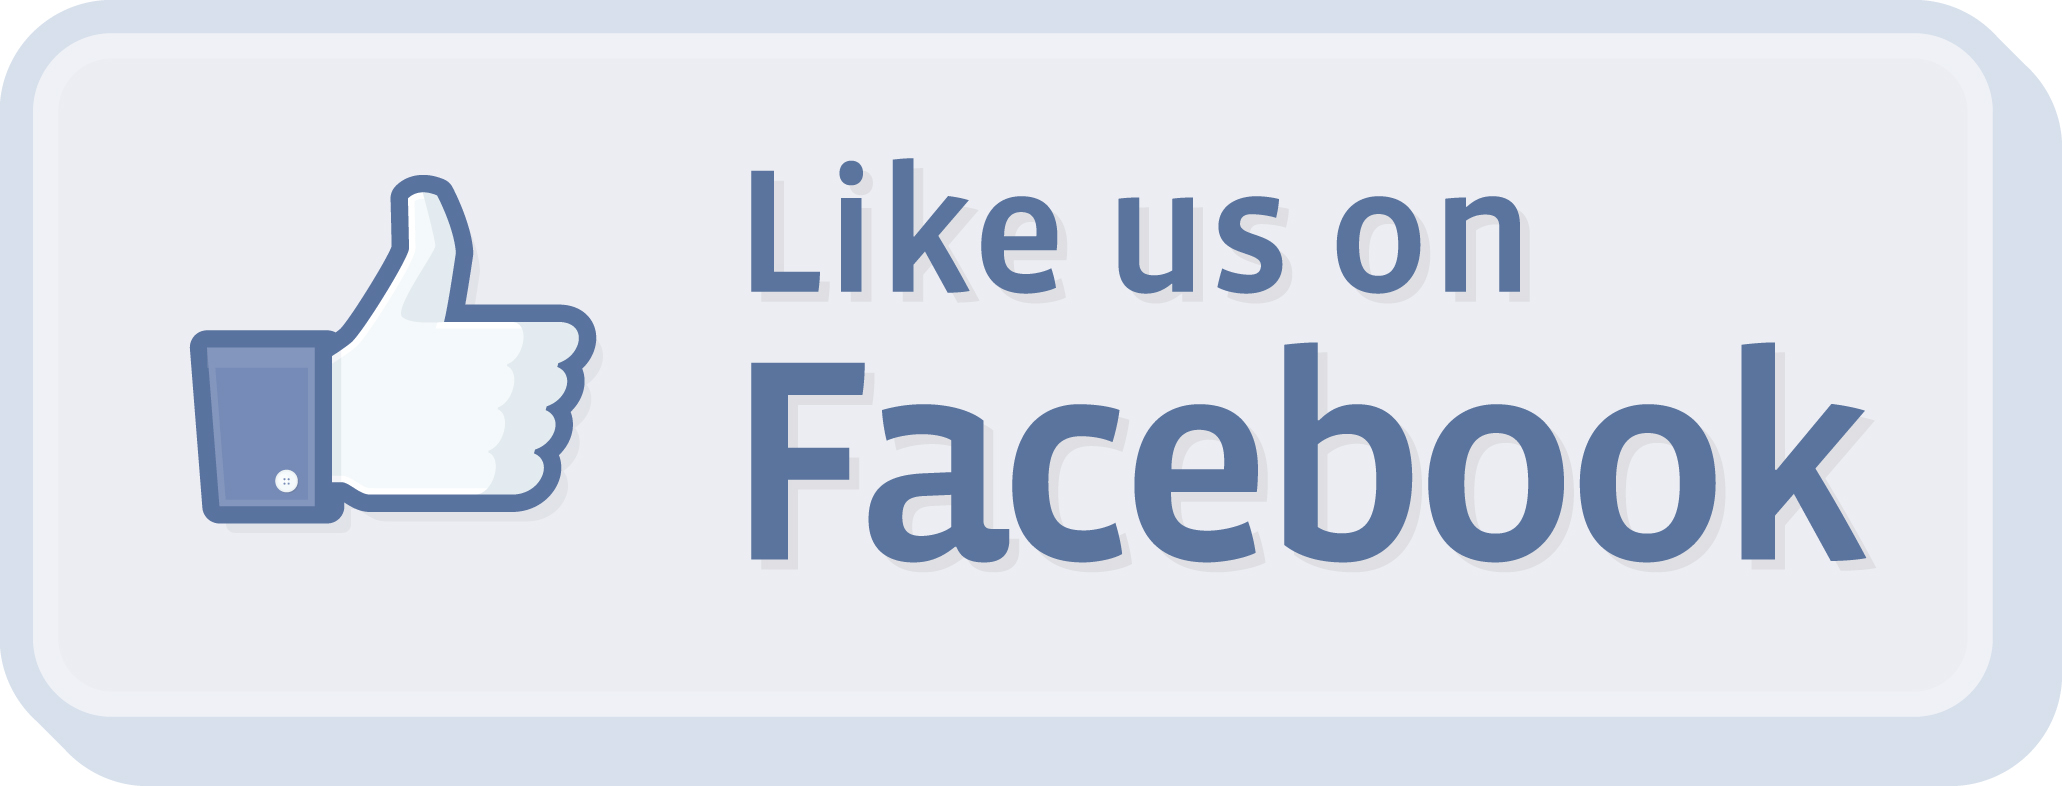 500 facebook logo latest facebook logo fb icon gif 500 facebook logo latest facebook logo fb icon gif transparent png biocorpaavc Images